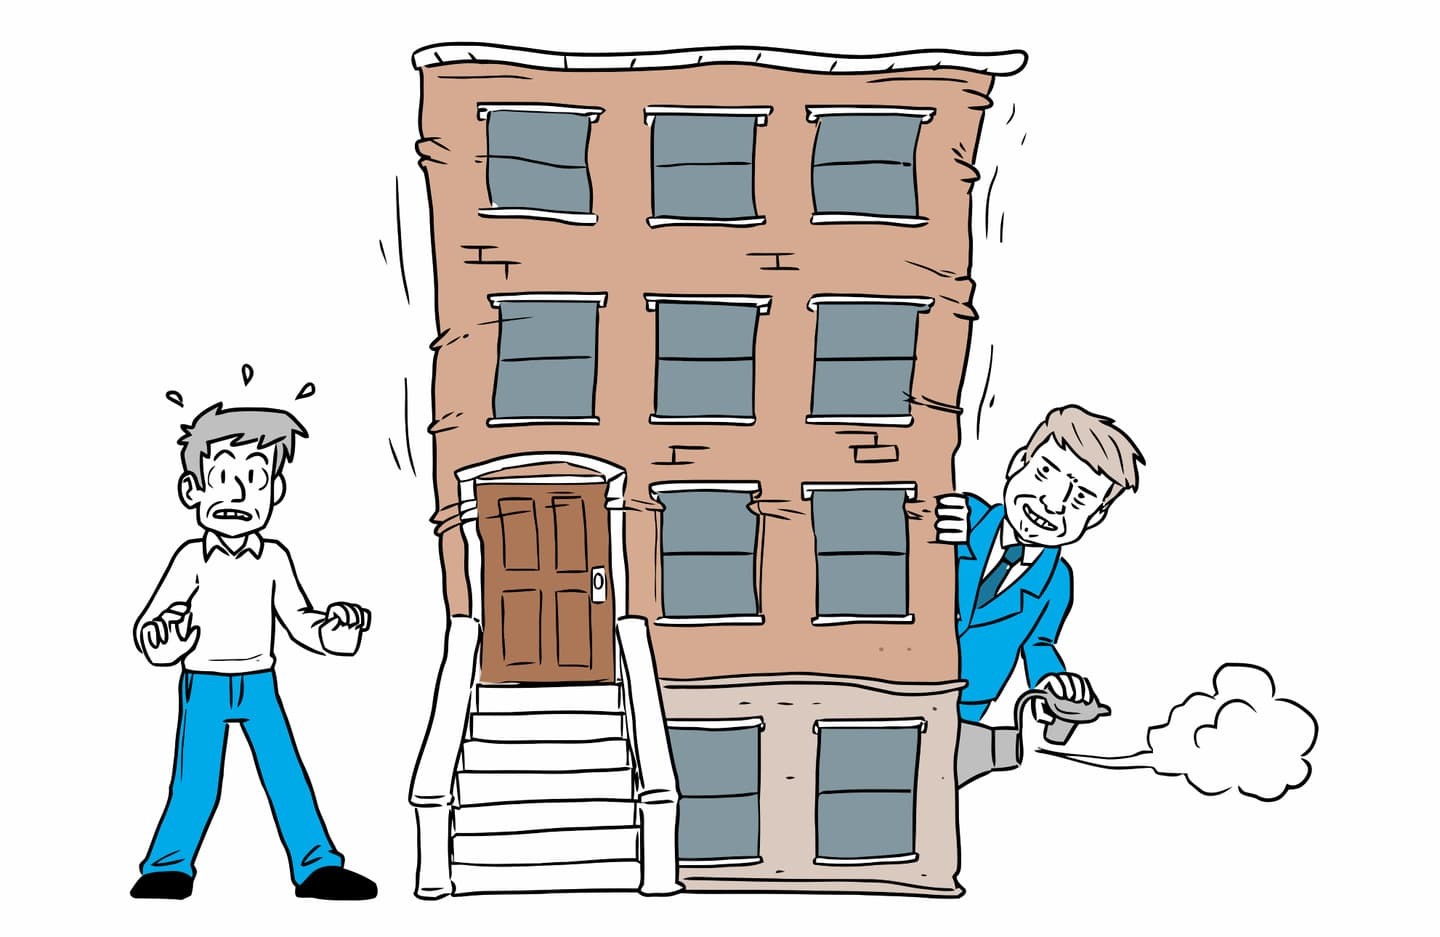 Cartoon Donald Trump letting the air out of a building to signify tax reform will weaken the NYC real estate market